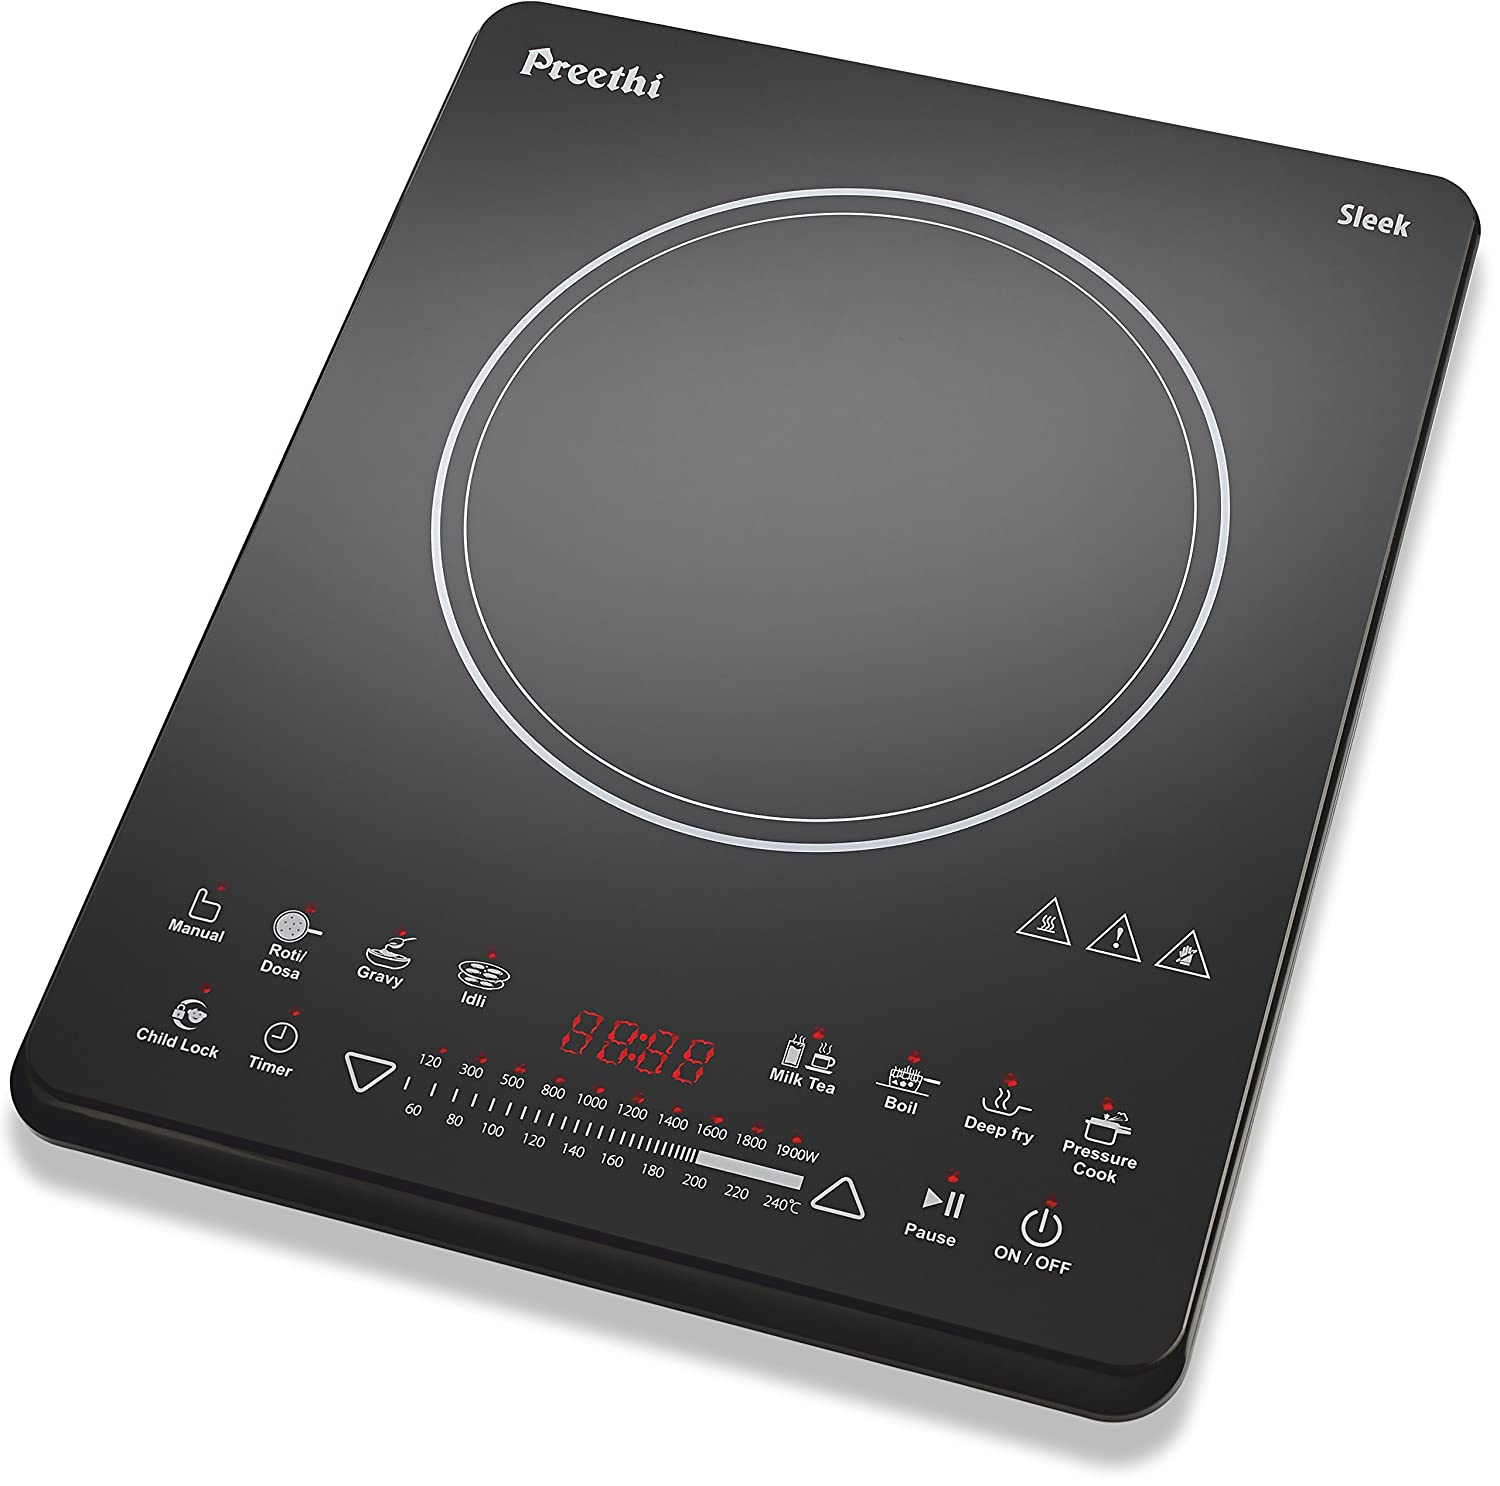 Classic Cuisine w Induction Cooker Countertop Portable 5